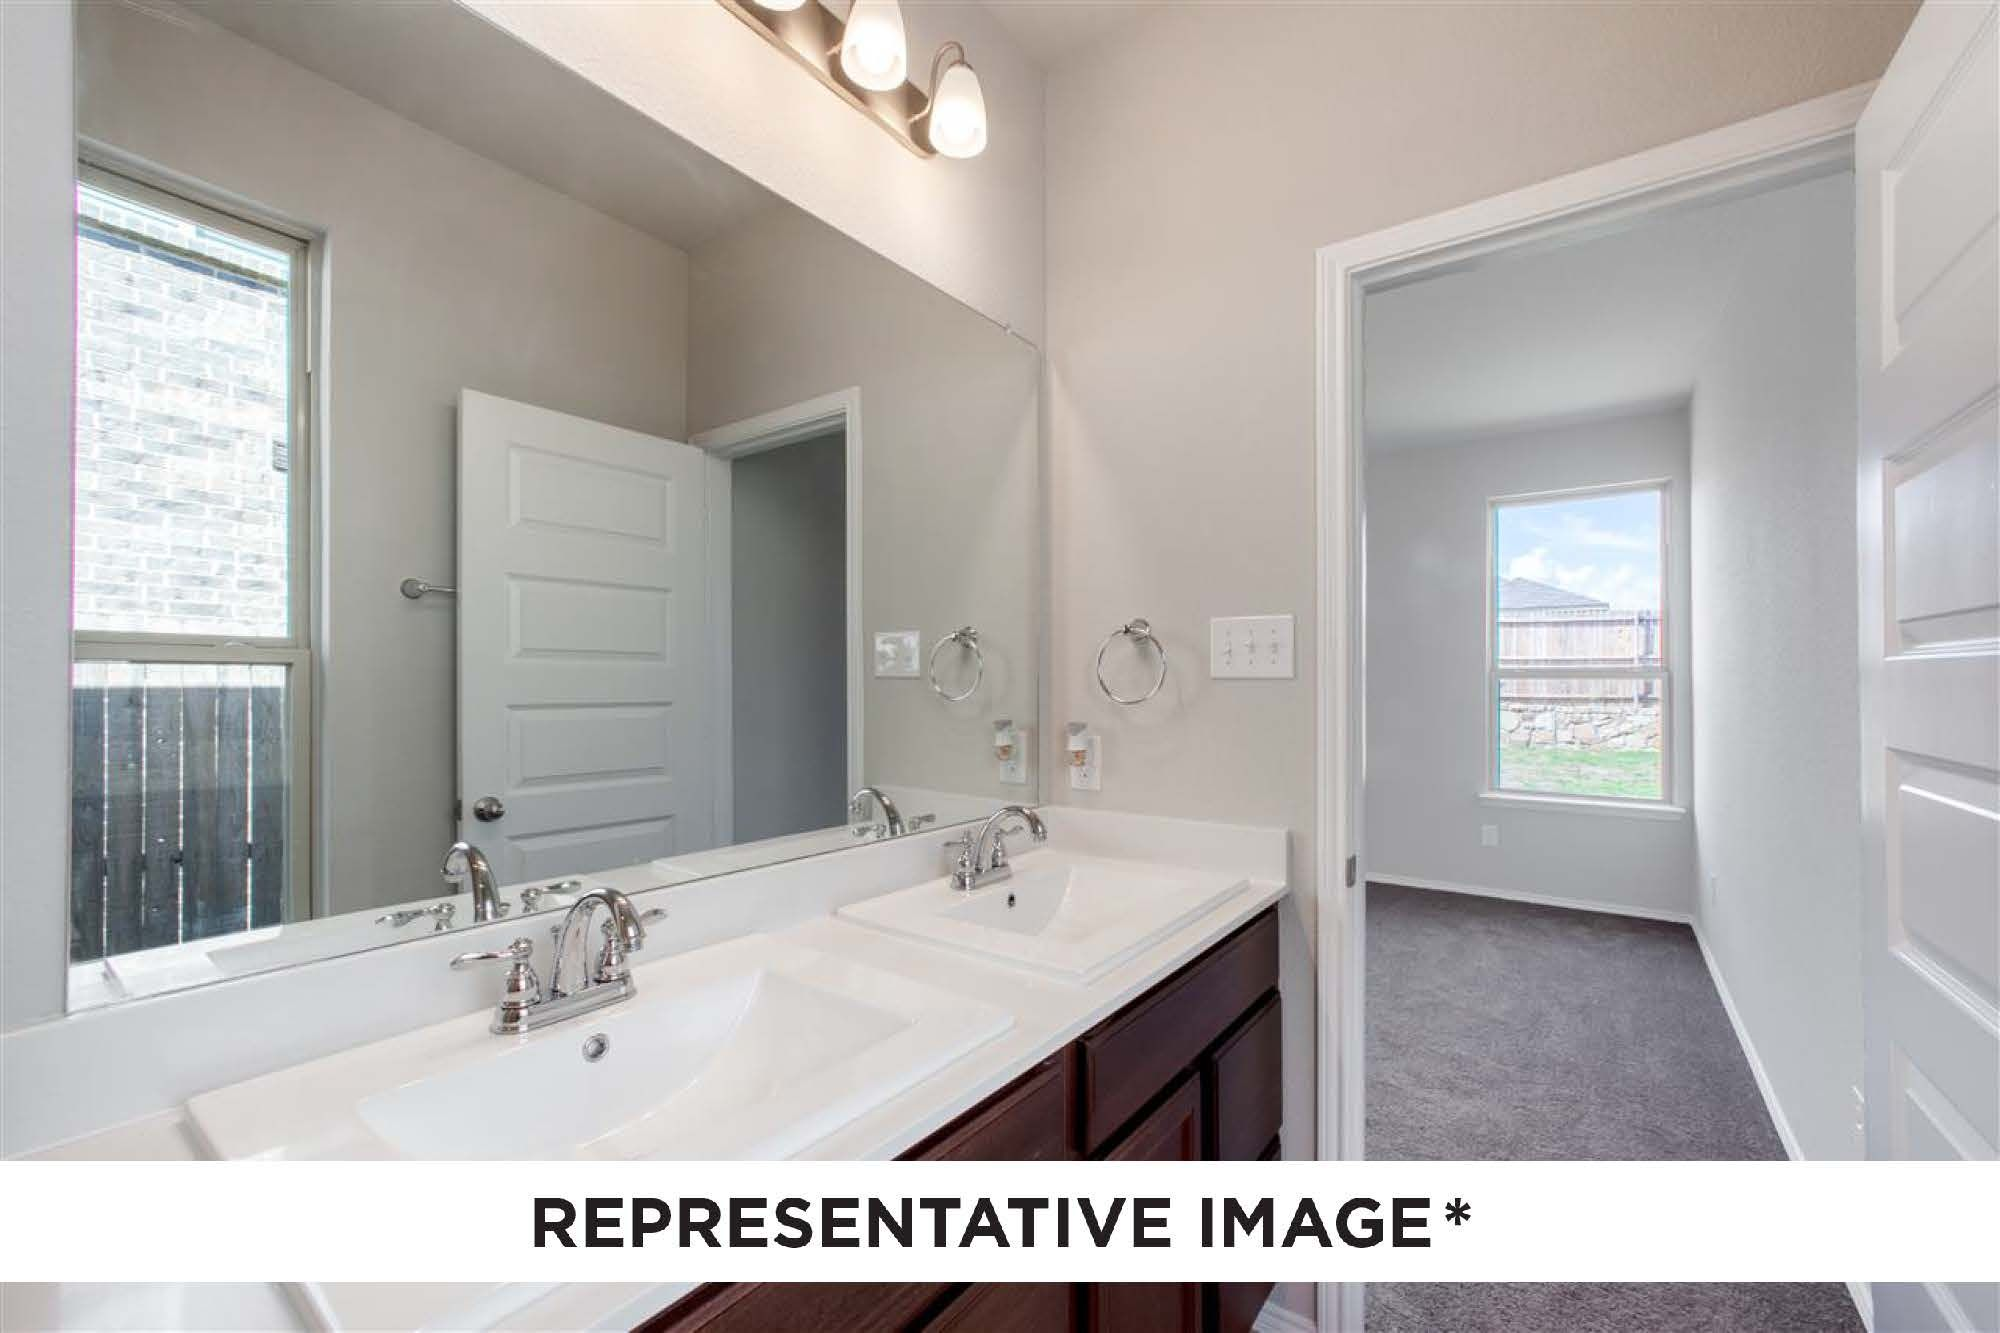 Bathroom featured in the Dogwood By HistoryMaker Homes    in Sherman-Denison, TX